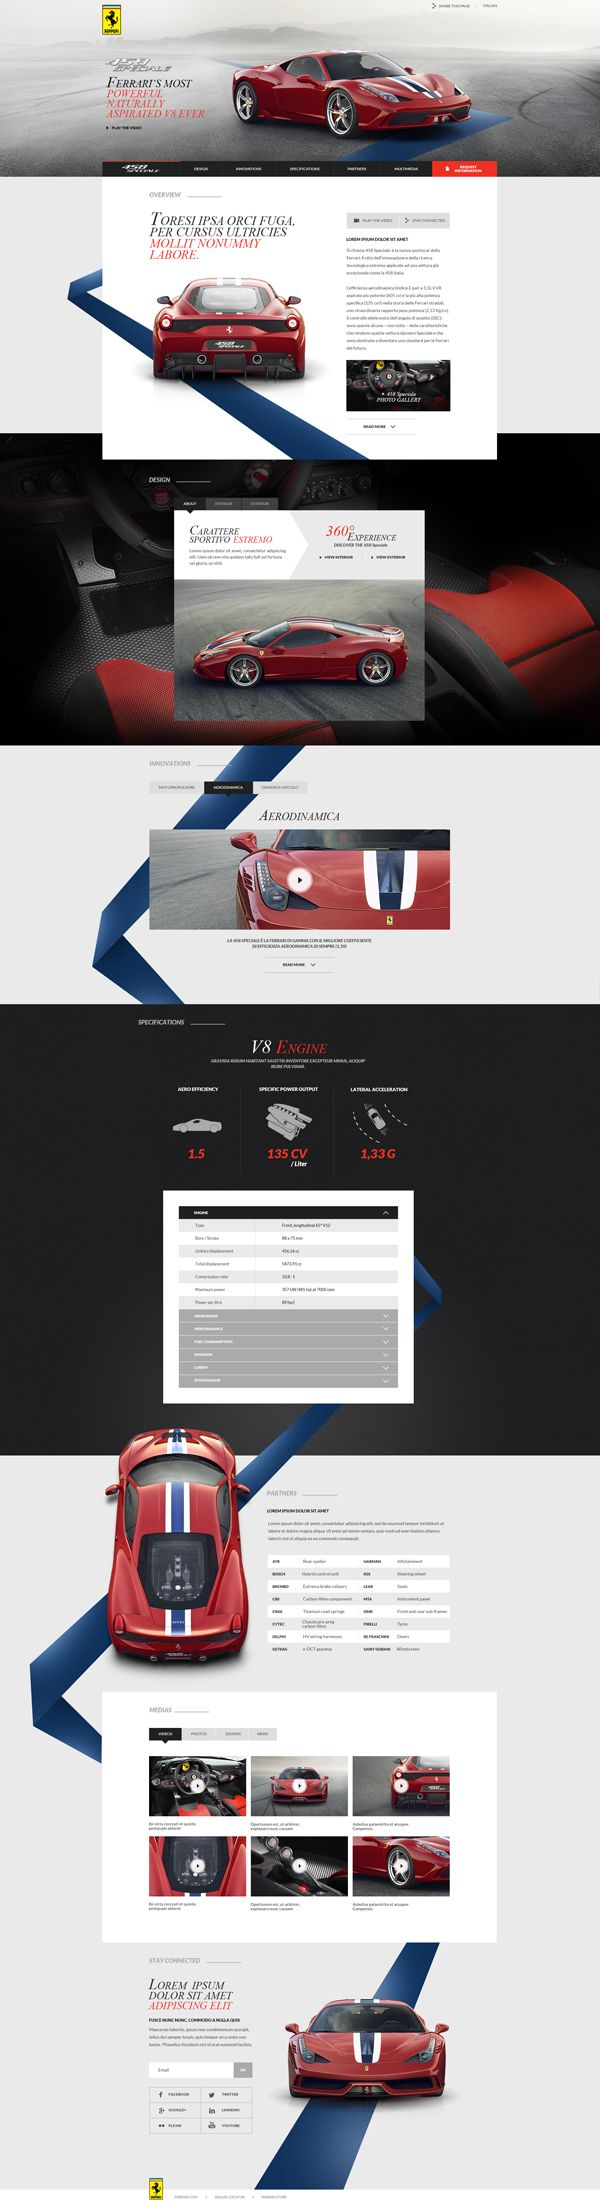 Ferrari - 458 Speciale Launch Website on Behance